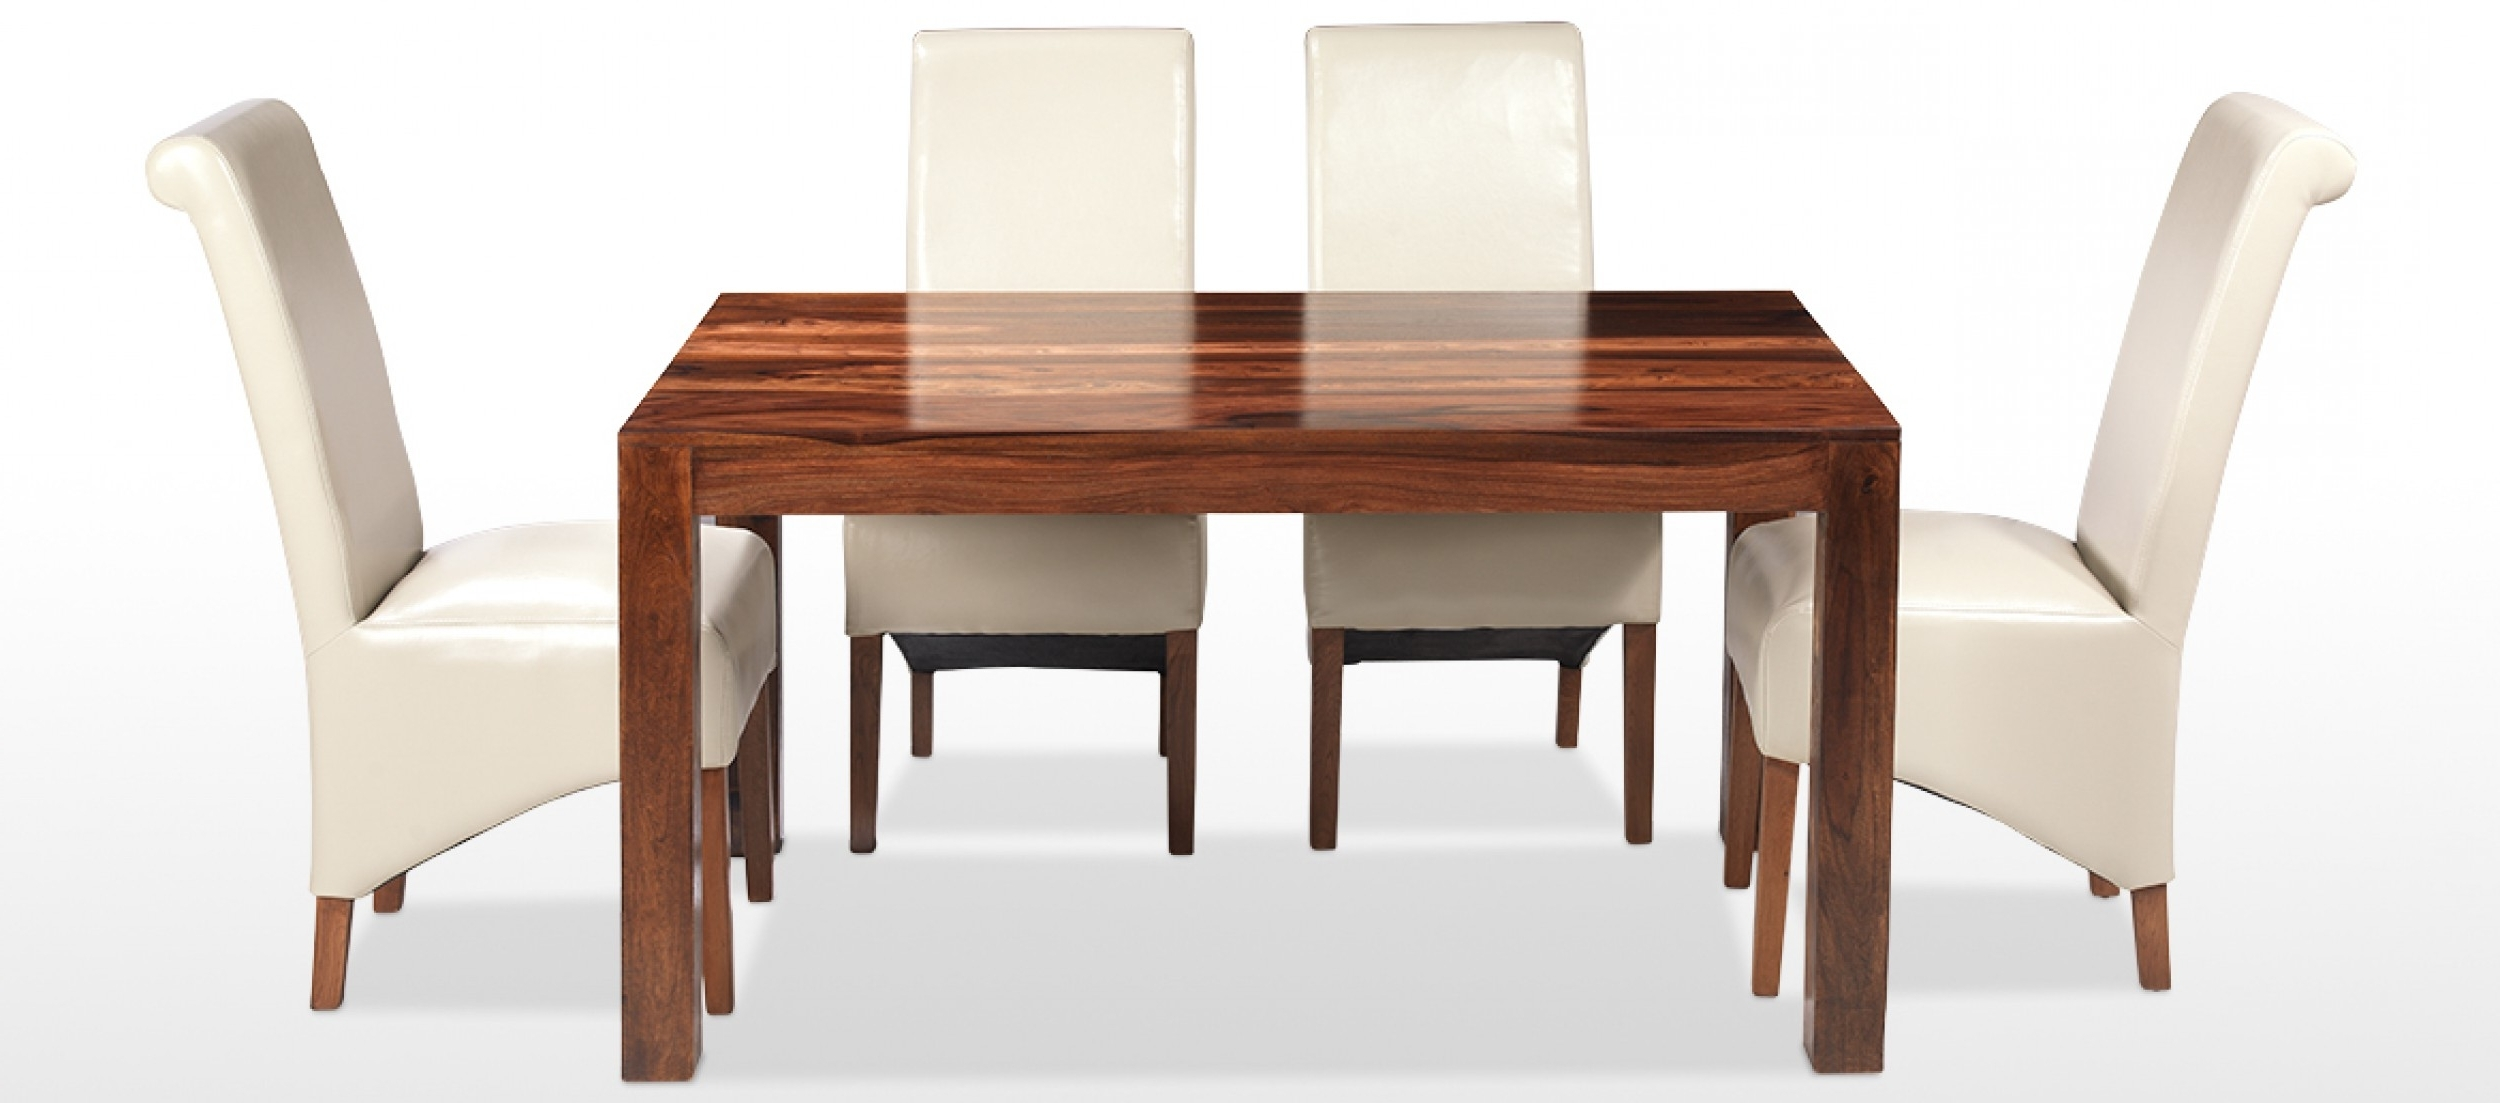 Quercus Living With Well Known Cube Dining Tables (View 19 of 25)